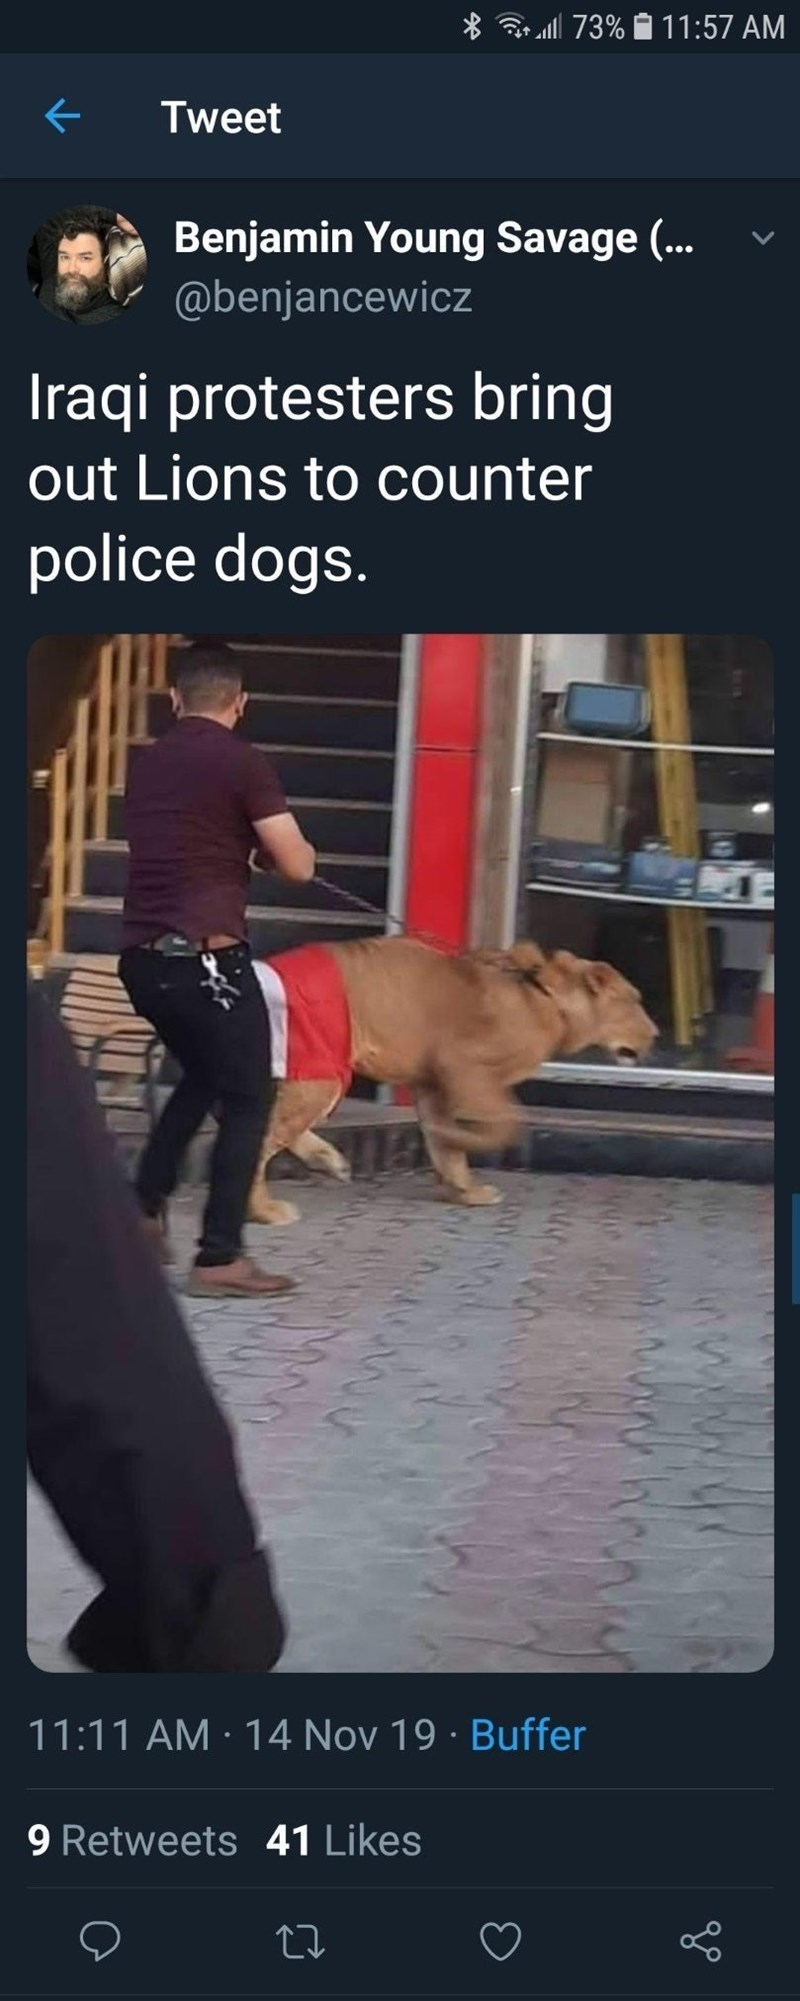 Mammal - 73% 11:57 AM Tweet Benjamin Young Savage (... @benjancewicz Iraqi protesters bring out Lions to counter police dogs. 11:11 AM 14 Nov 19 Buffer 9 Retweets 41 Likes rt